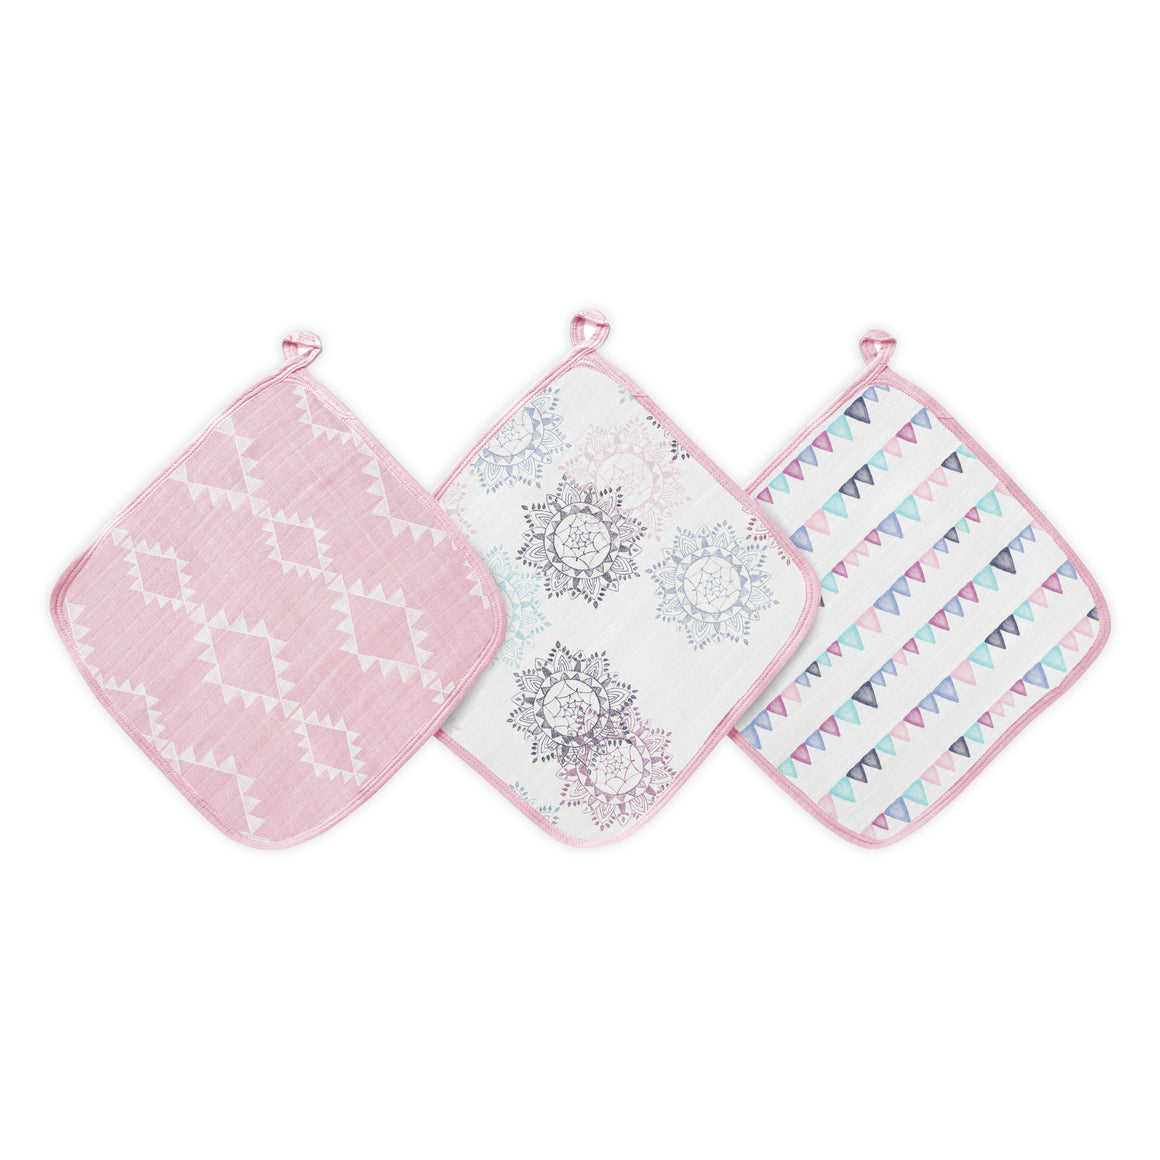 aden by aden + anais: pretty pink: soft muslin washcloths